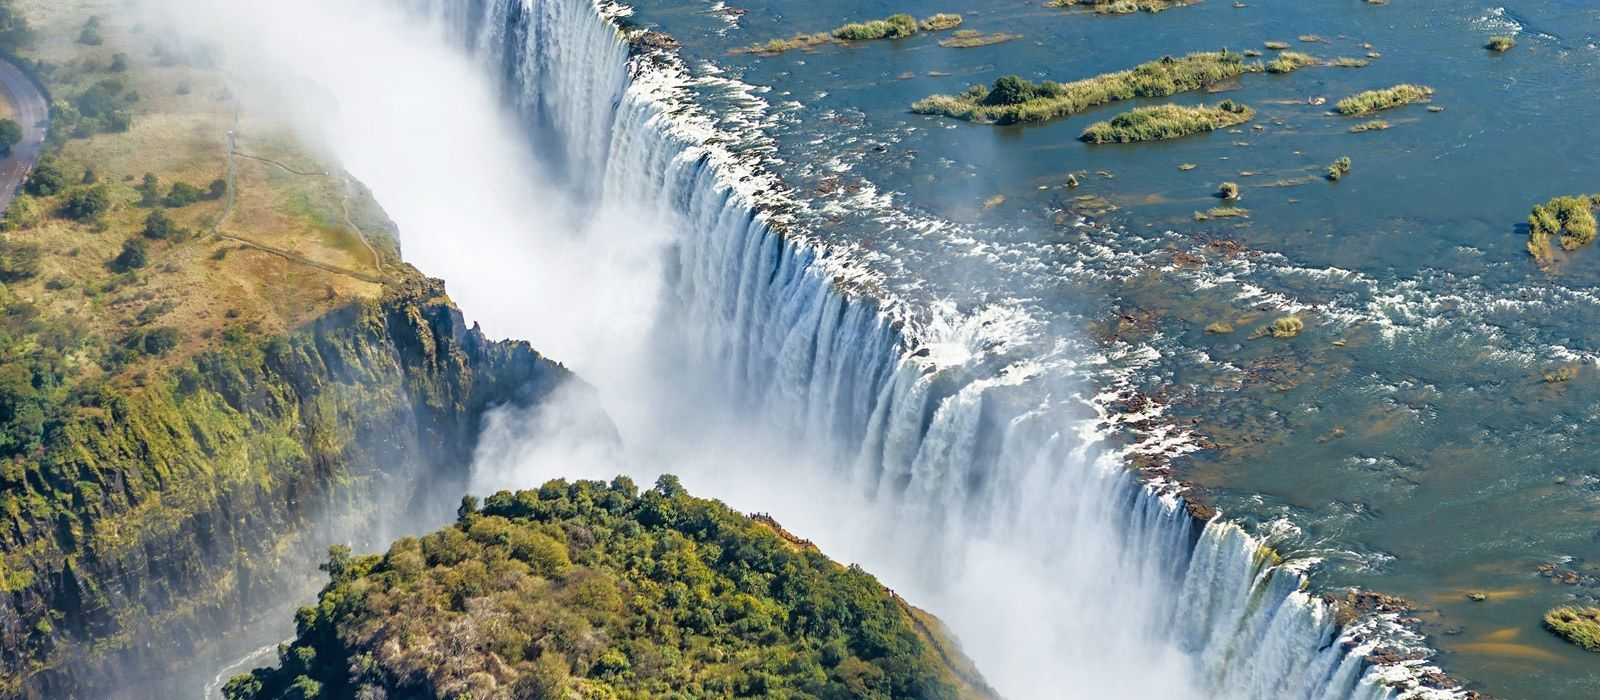 Image result for Victoria waterfalls in tanzania